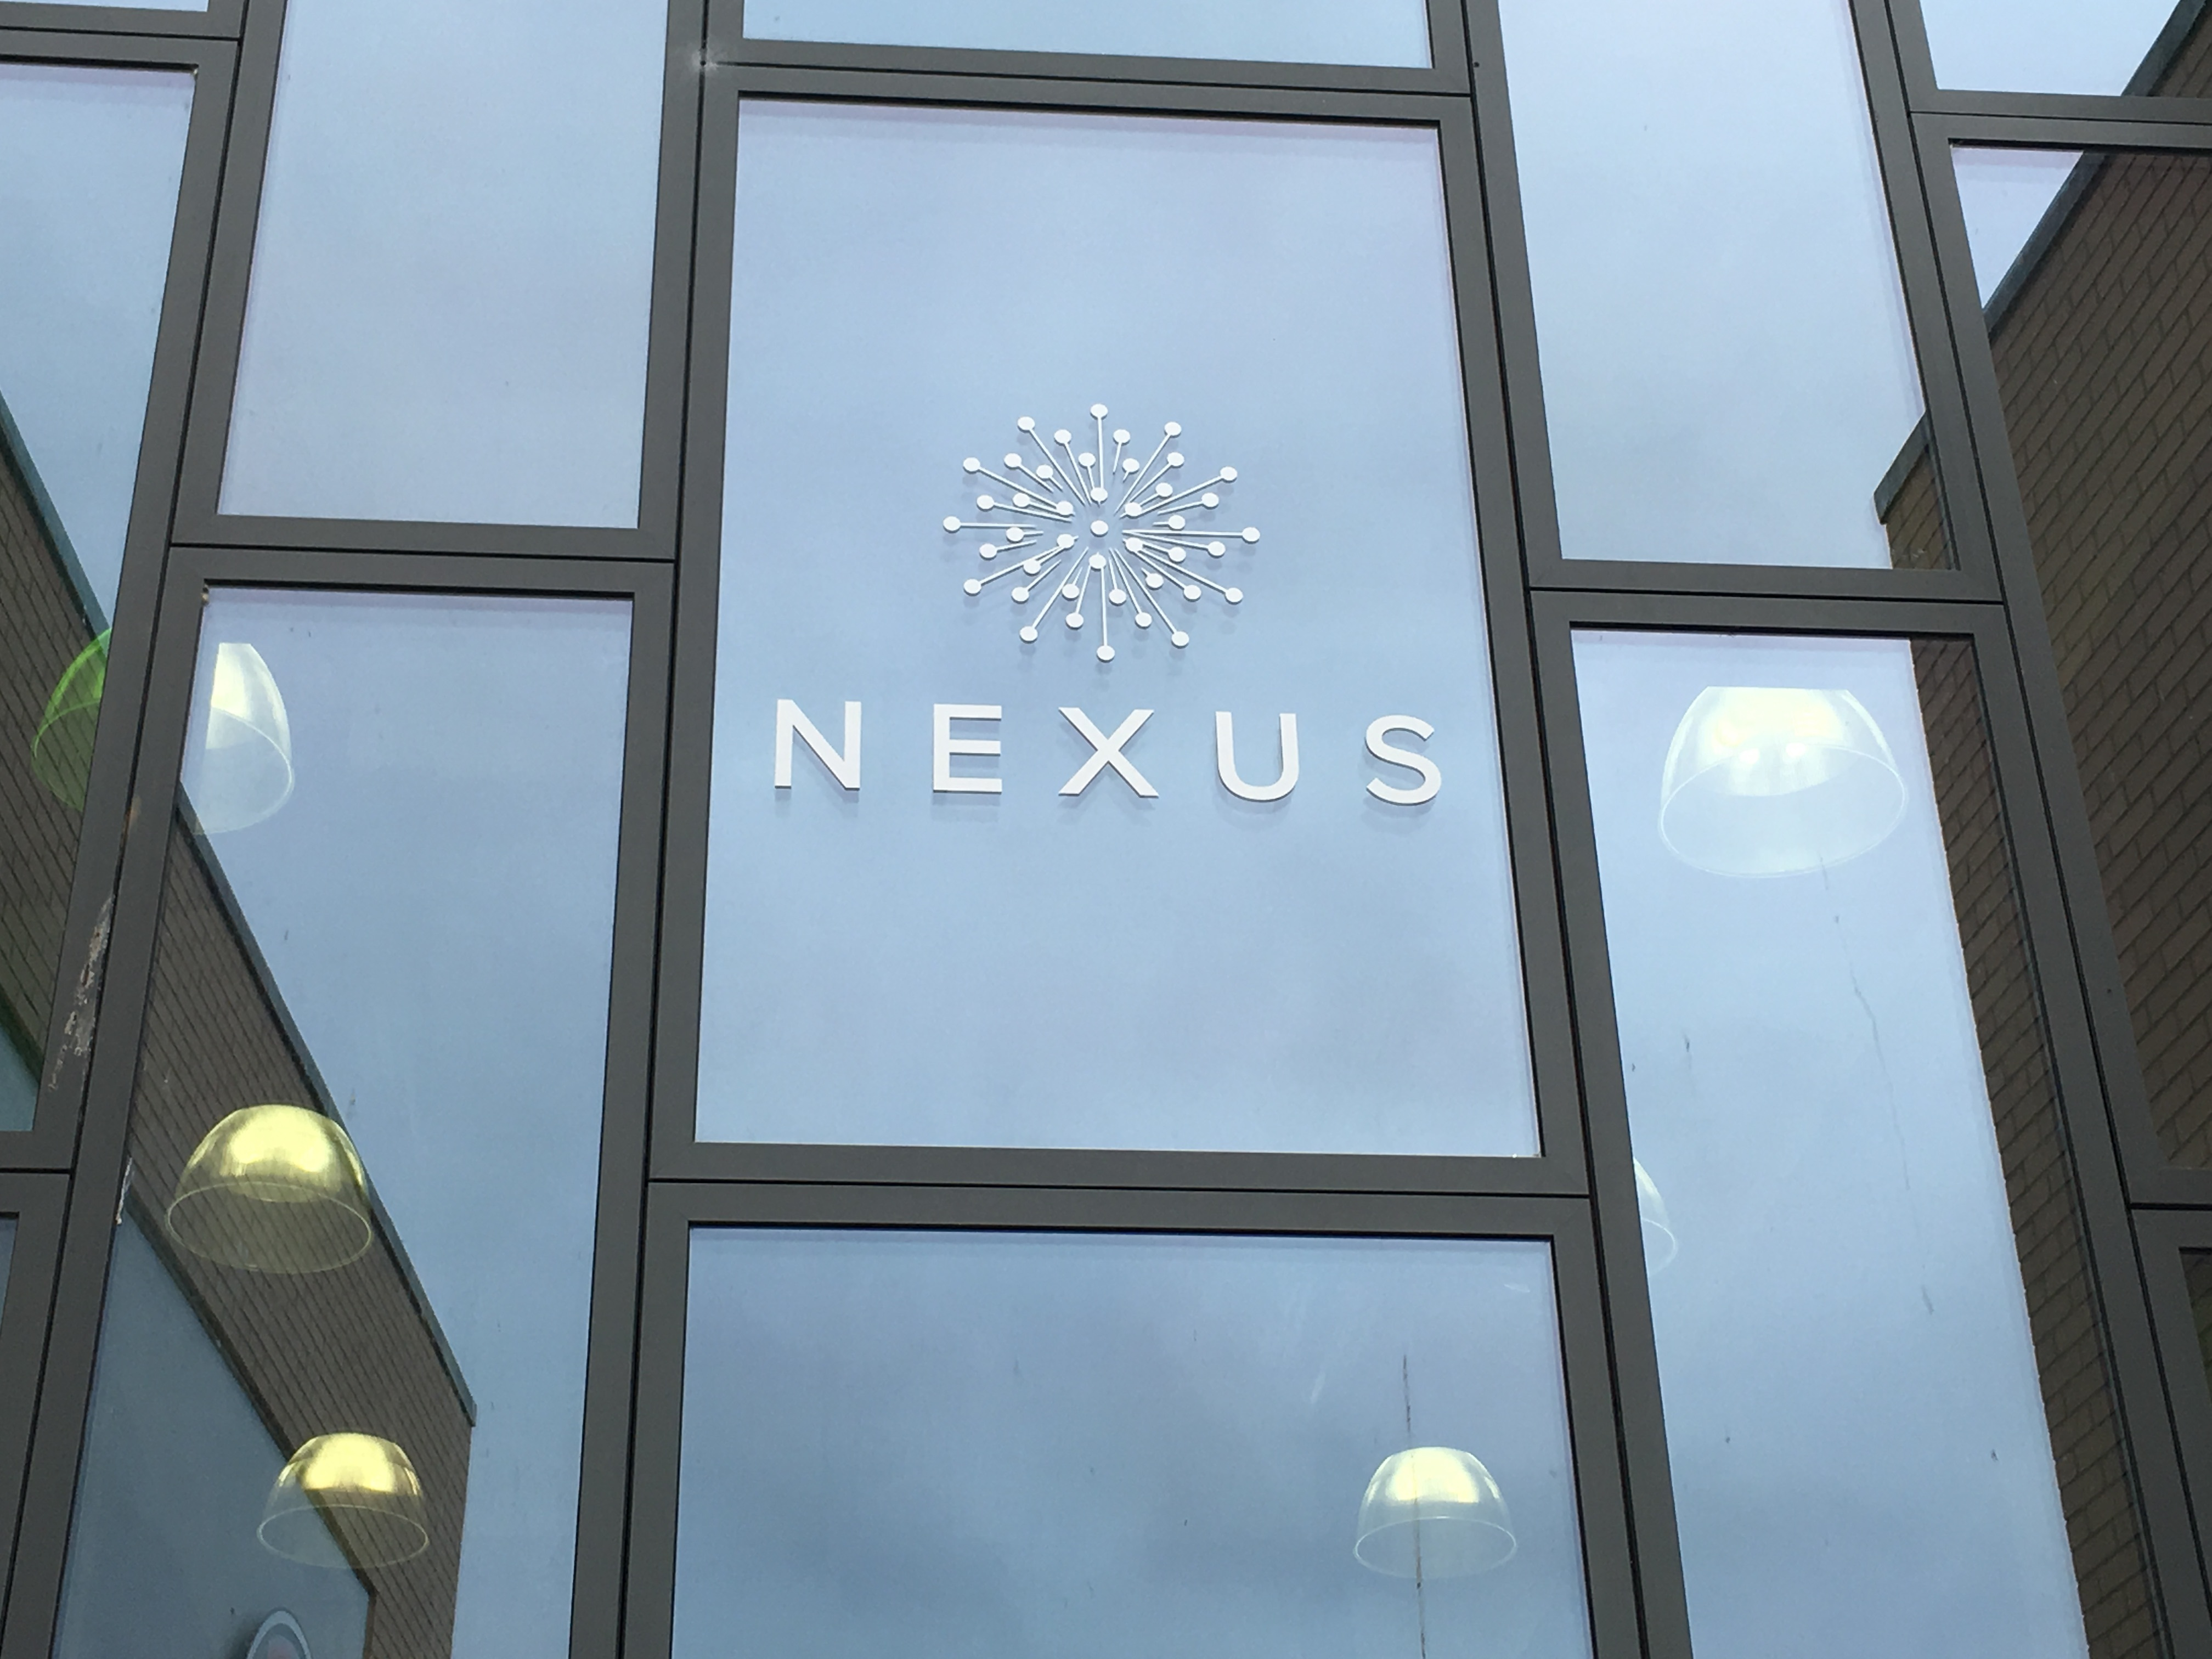 Nexus outside logo